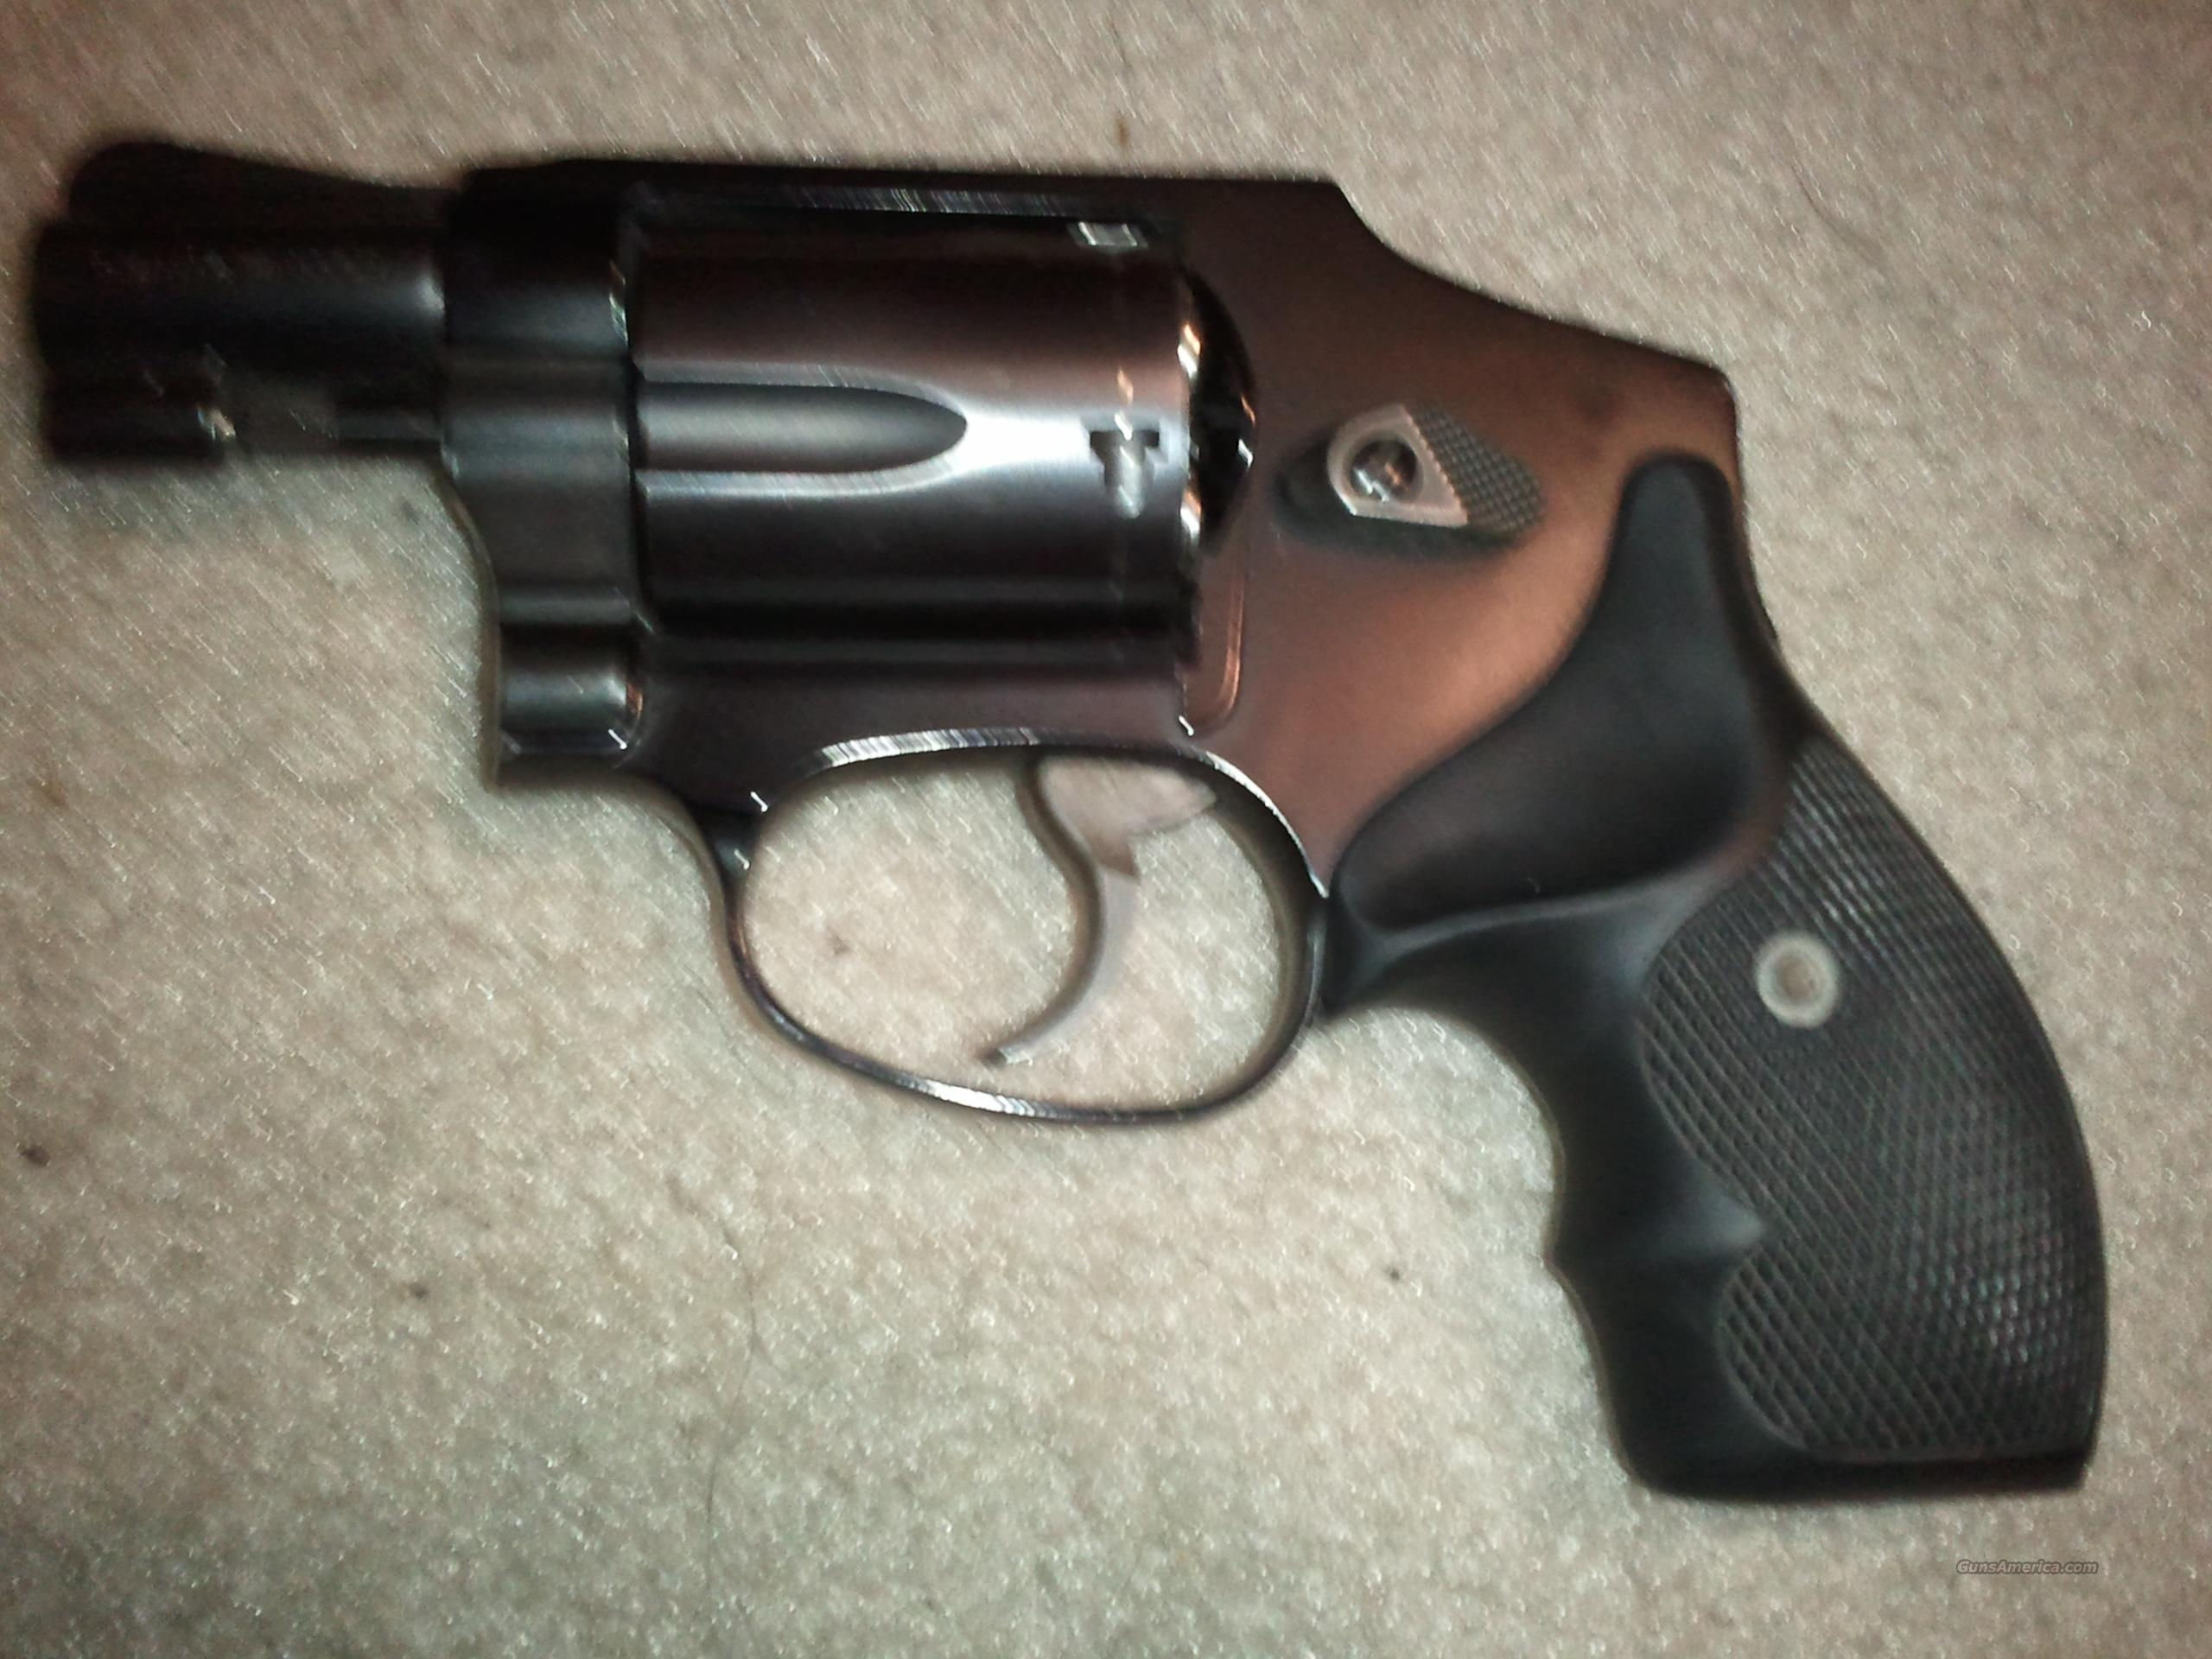 Slightly Used Smith and Wesson Model 442 .38 sp... for sale